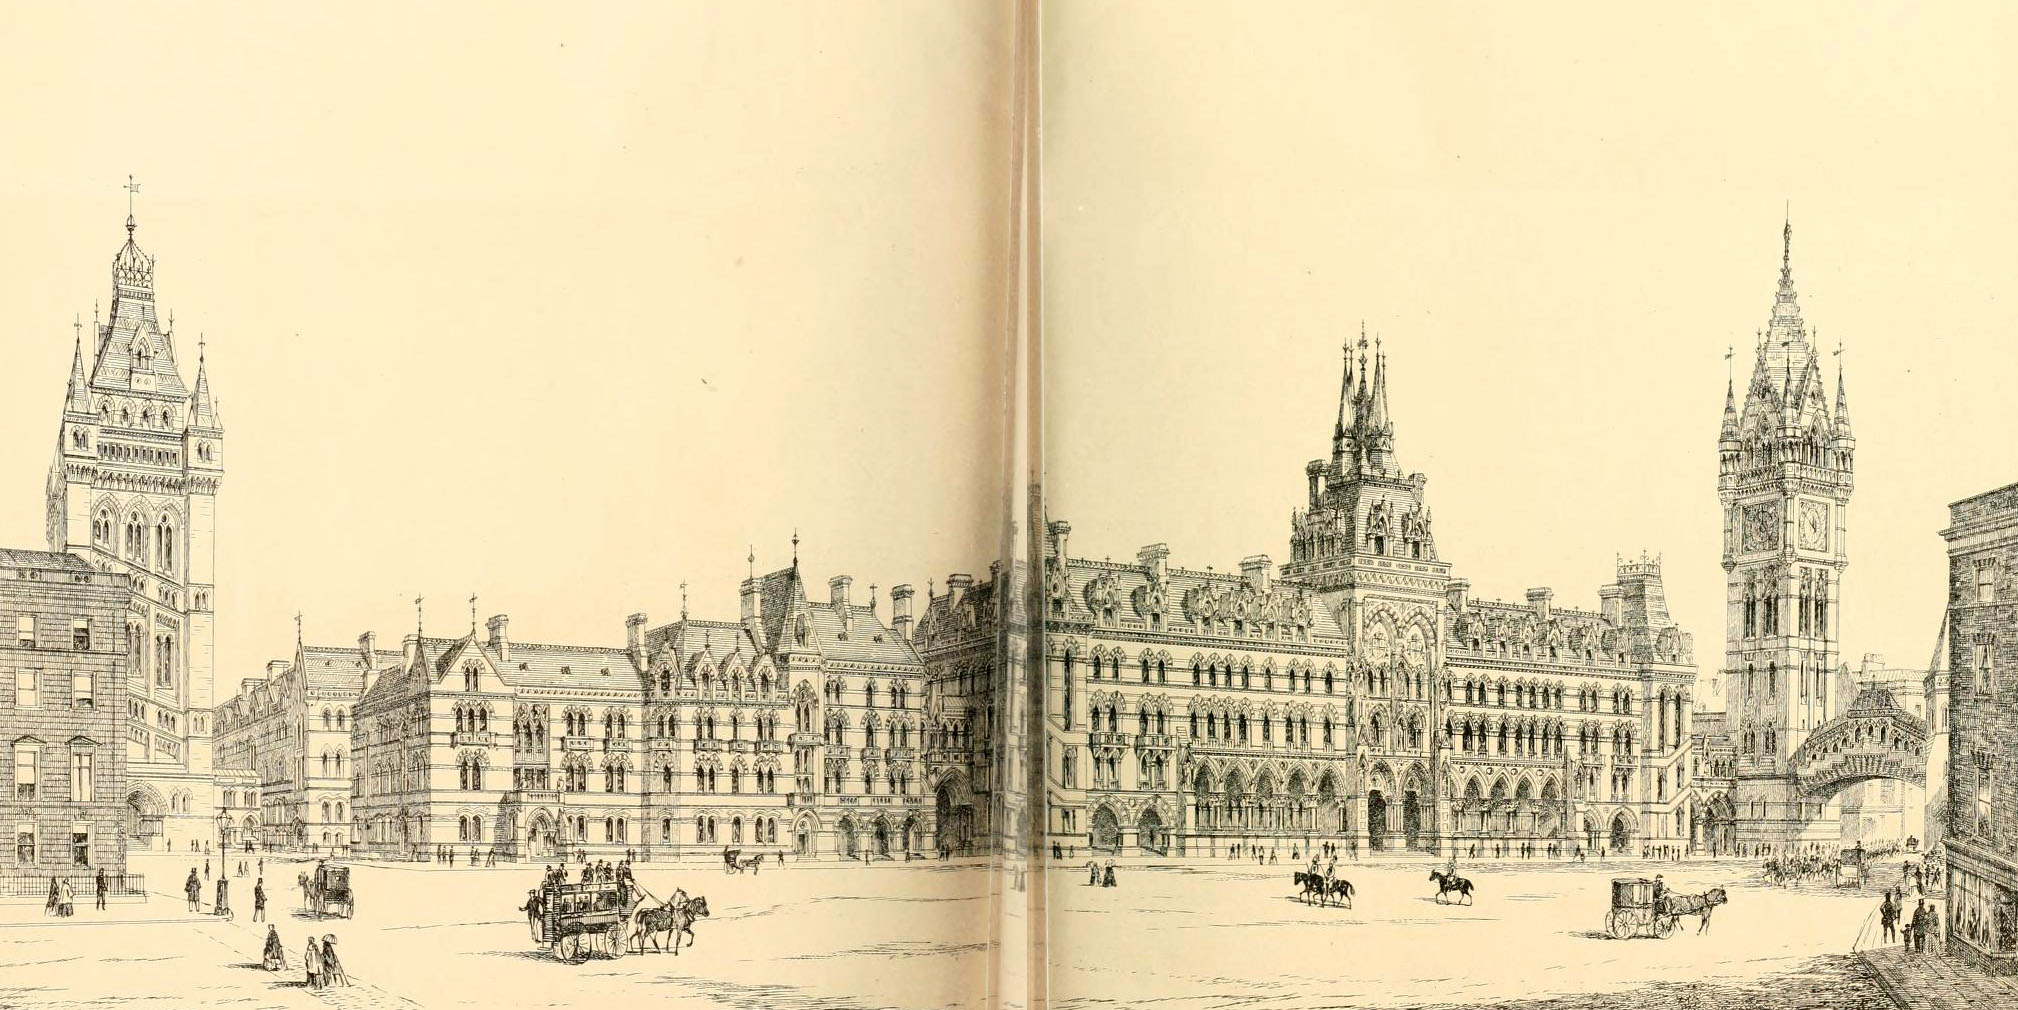 1867 – T.N. Deane's Design for Royal Courts of Justice, London